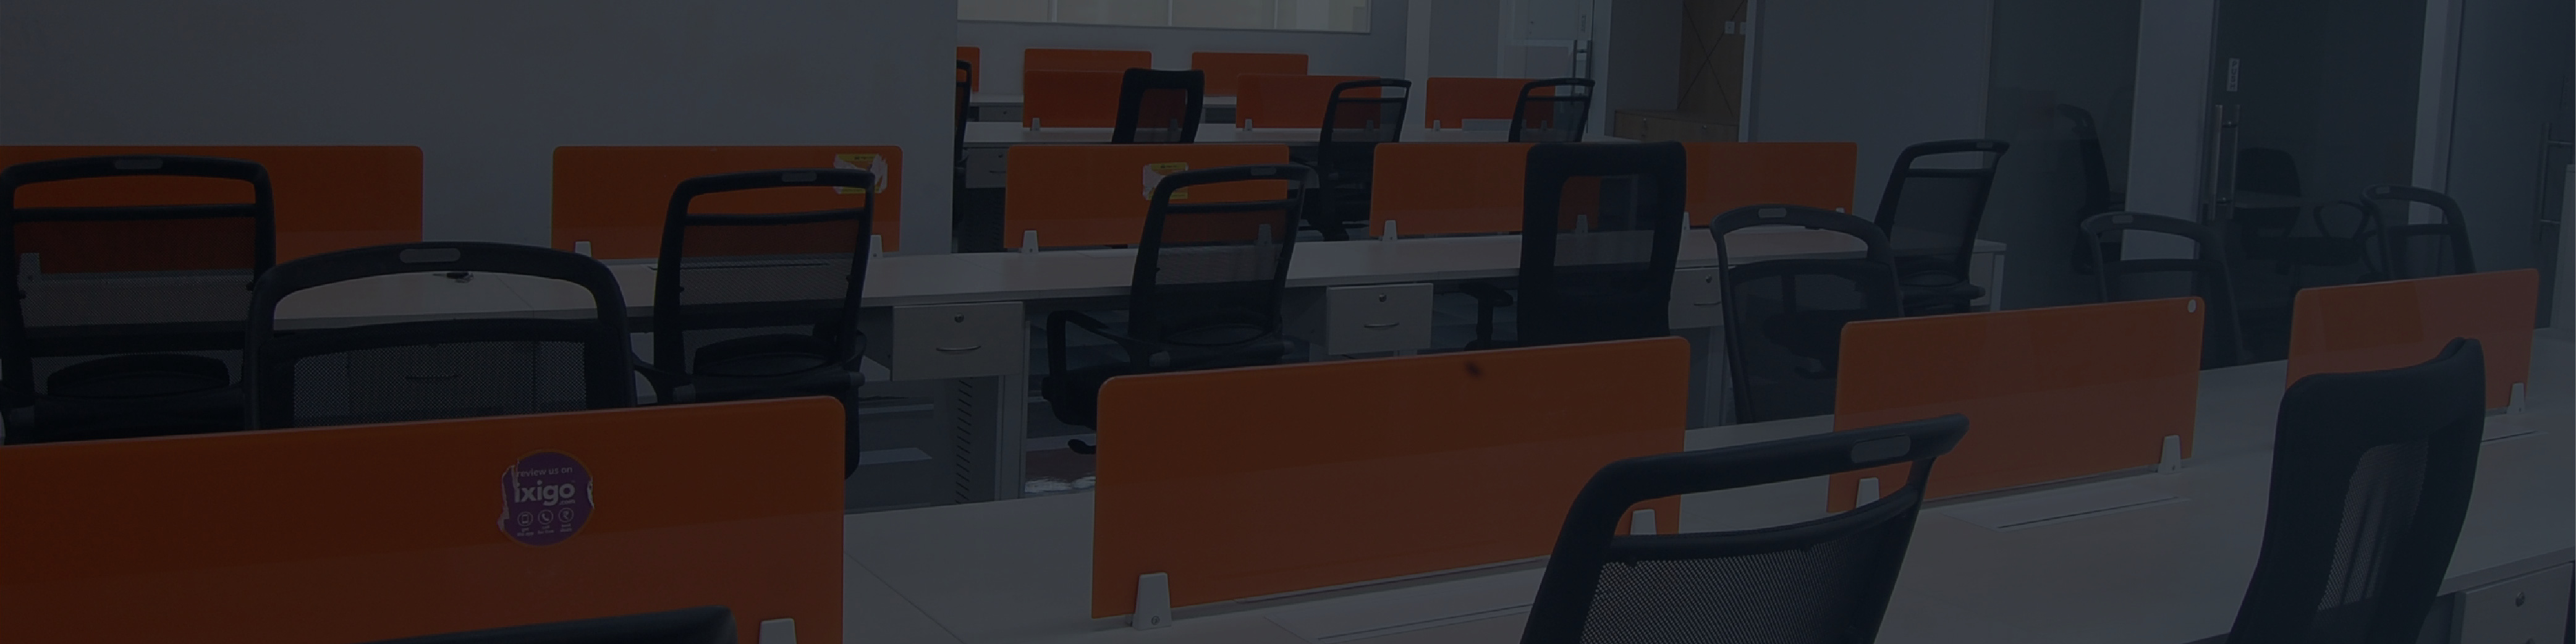 Coworking spaces in Noida from InstaOffice